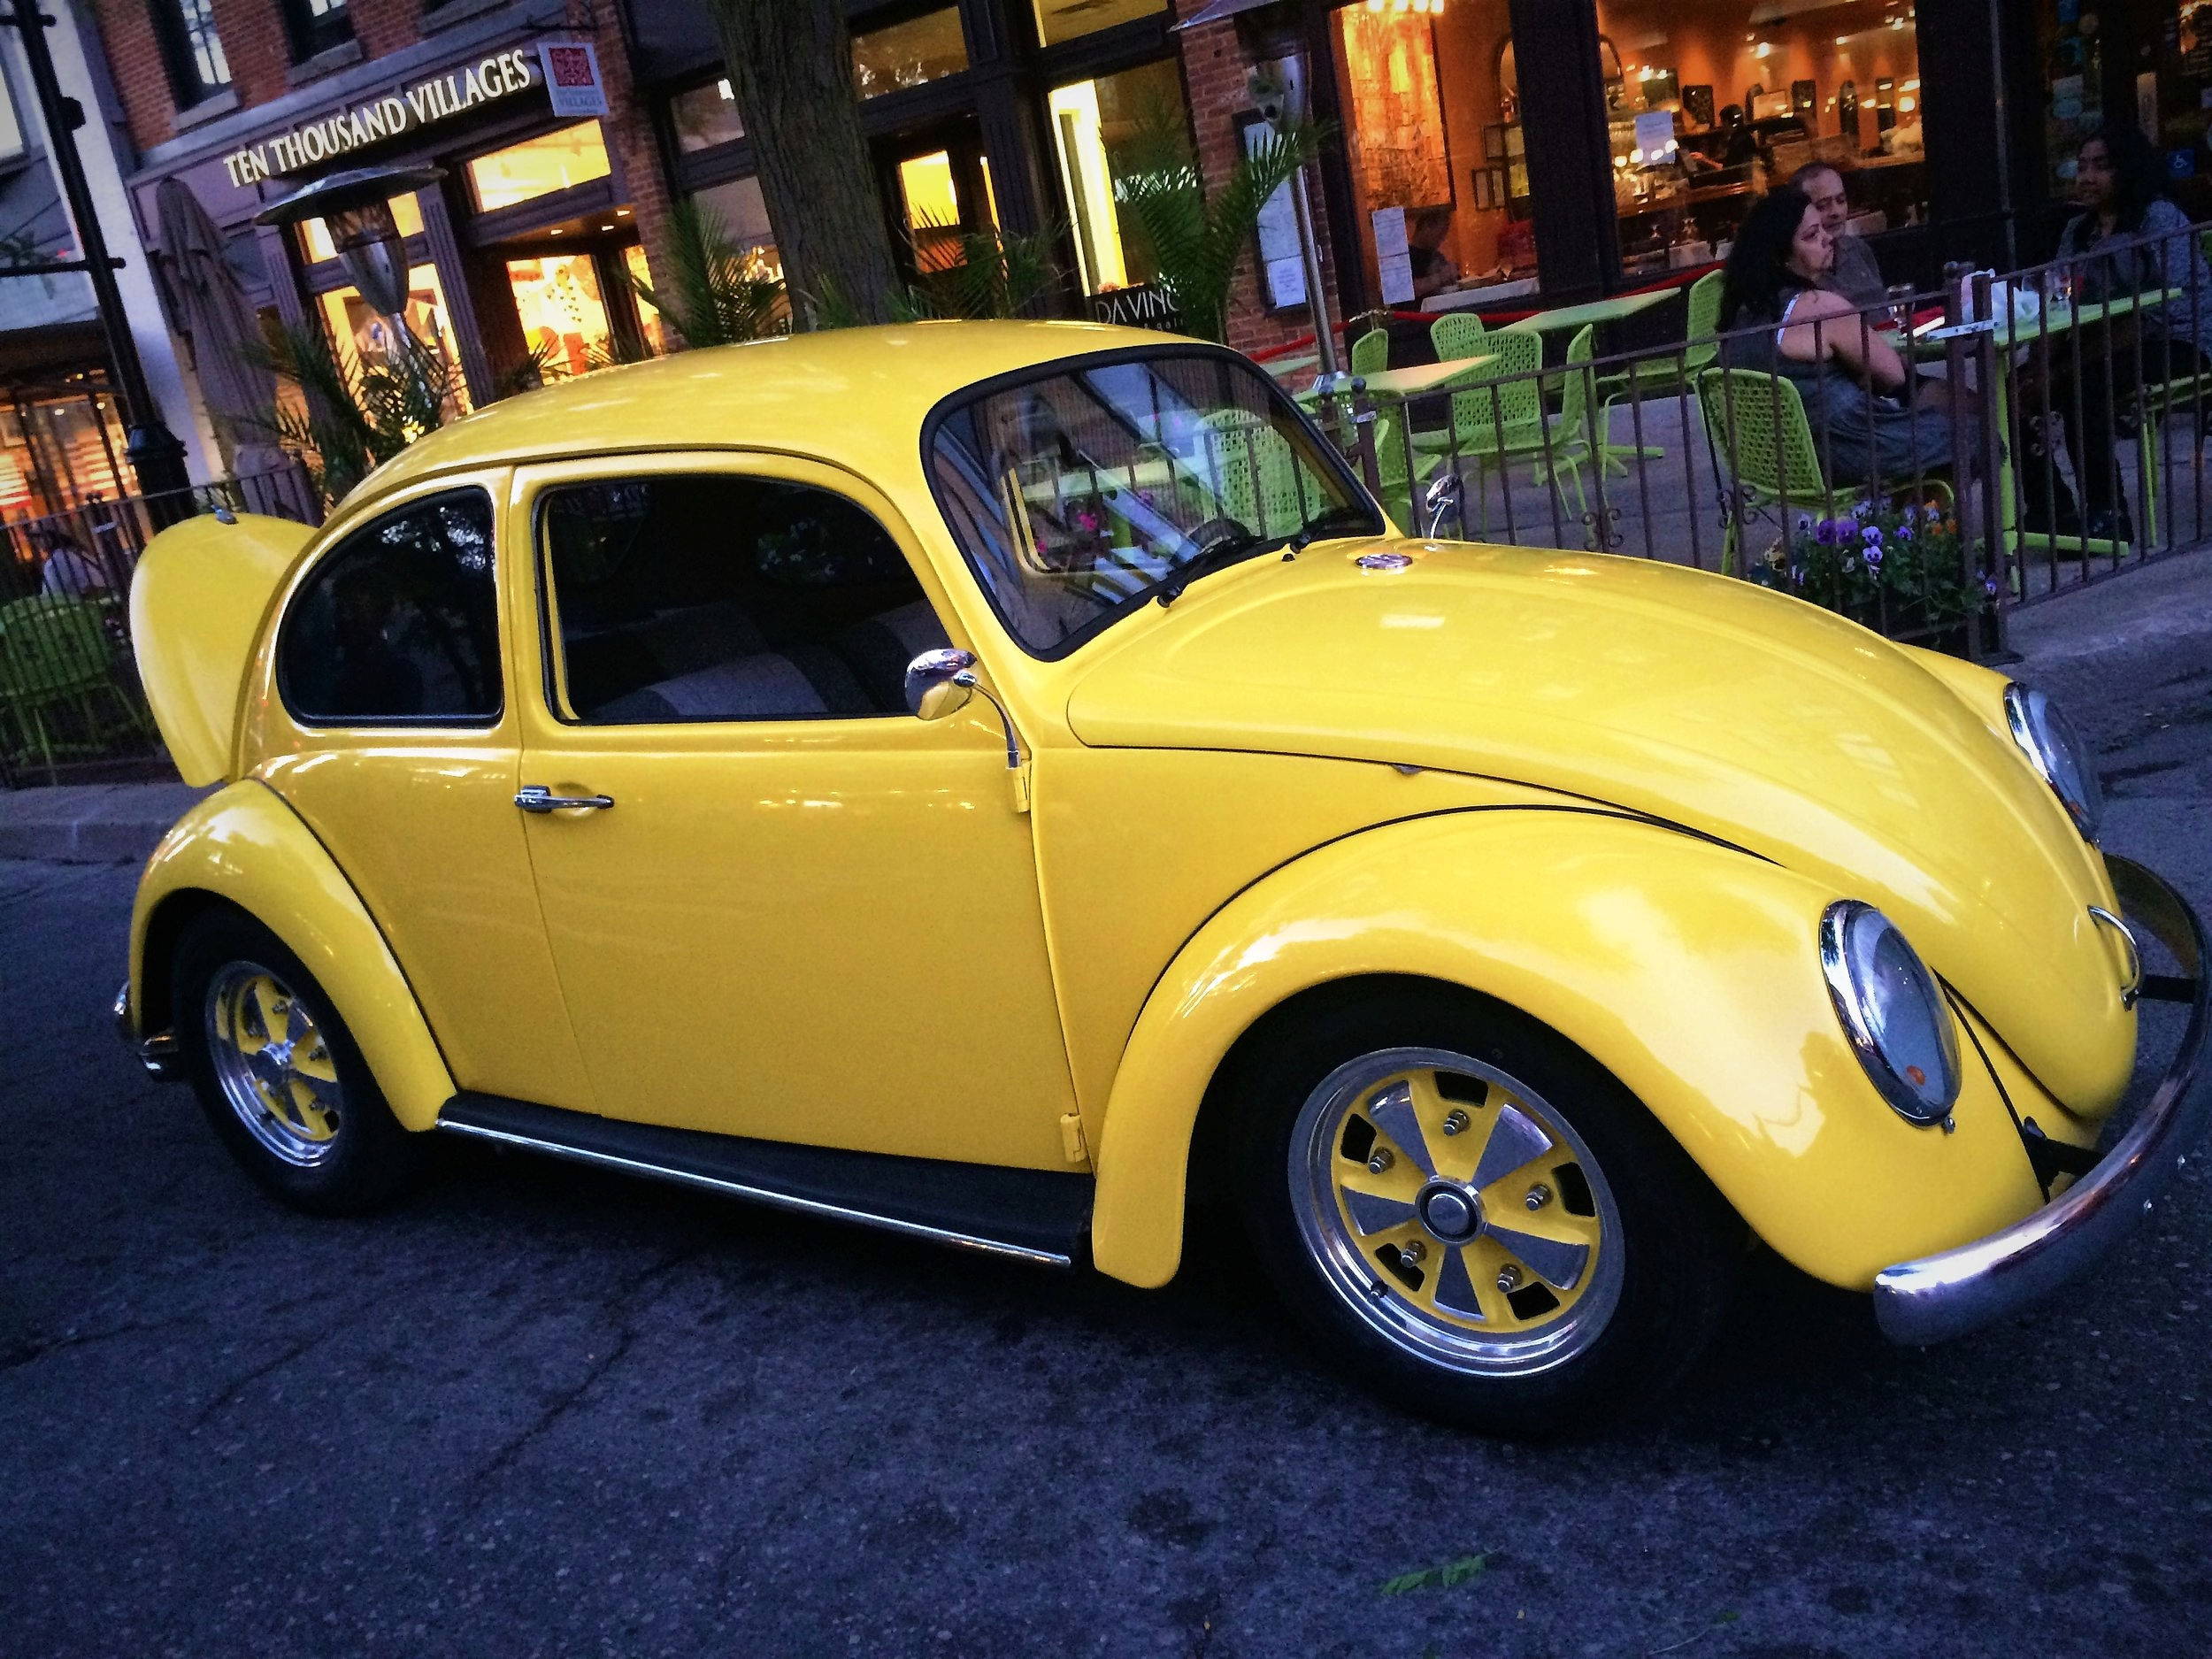 Stumbled upon a car show once while going to a bookstore... - Now I would very much like a little bug like this!